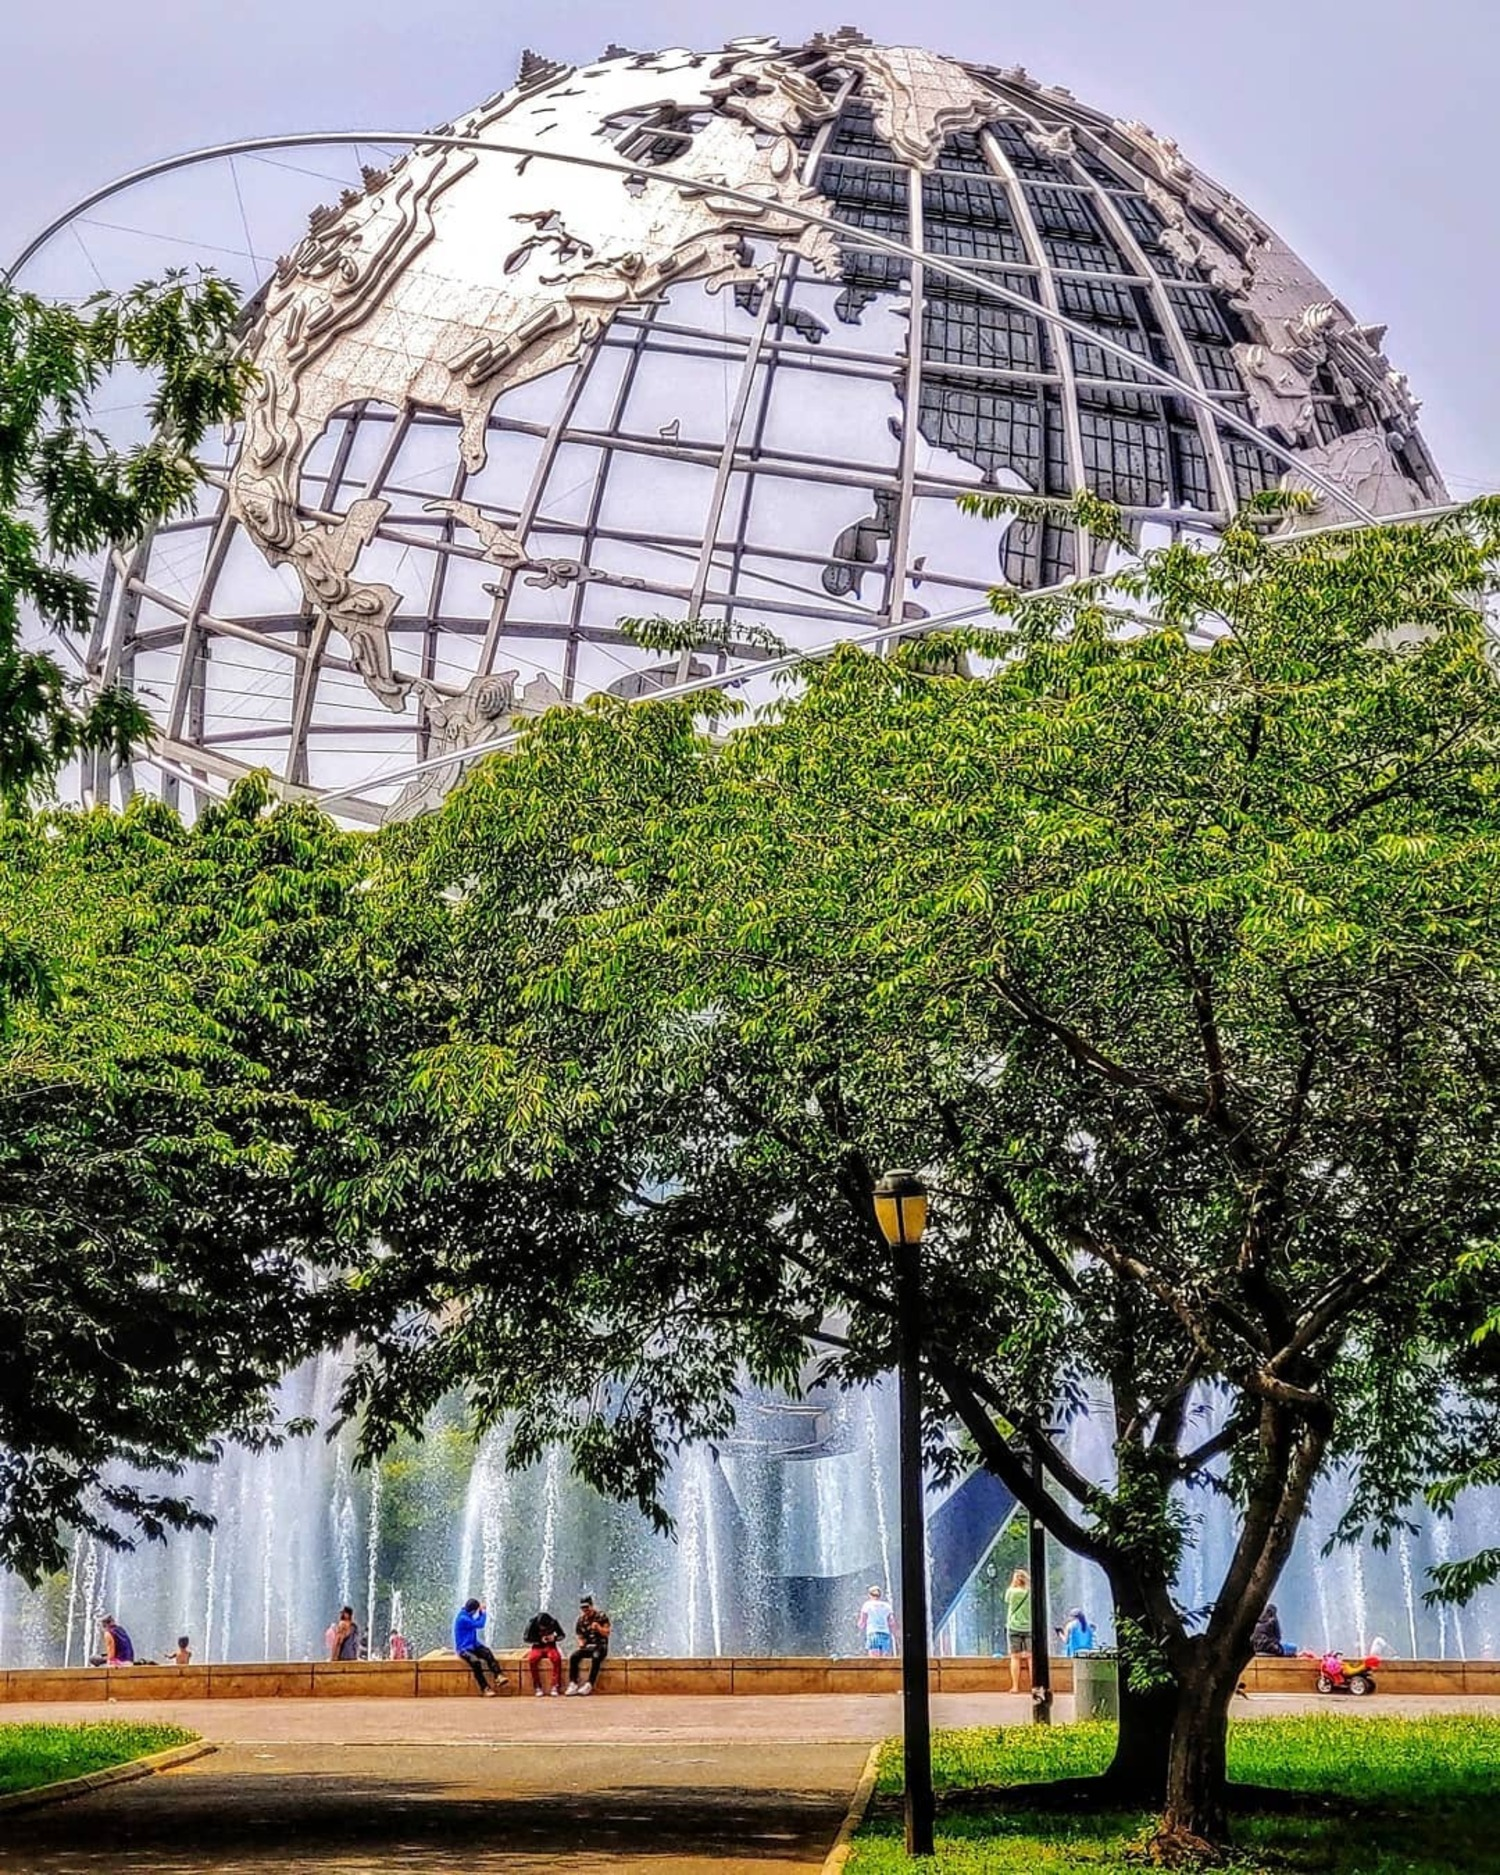 The Unisphere at Flushing Meadows-Corona Park, Queens